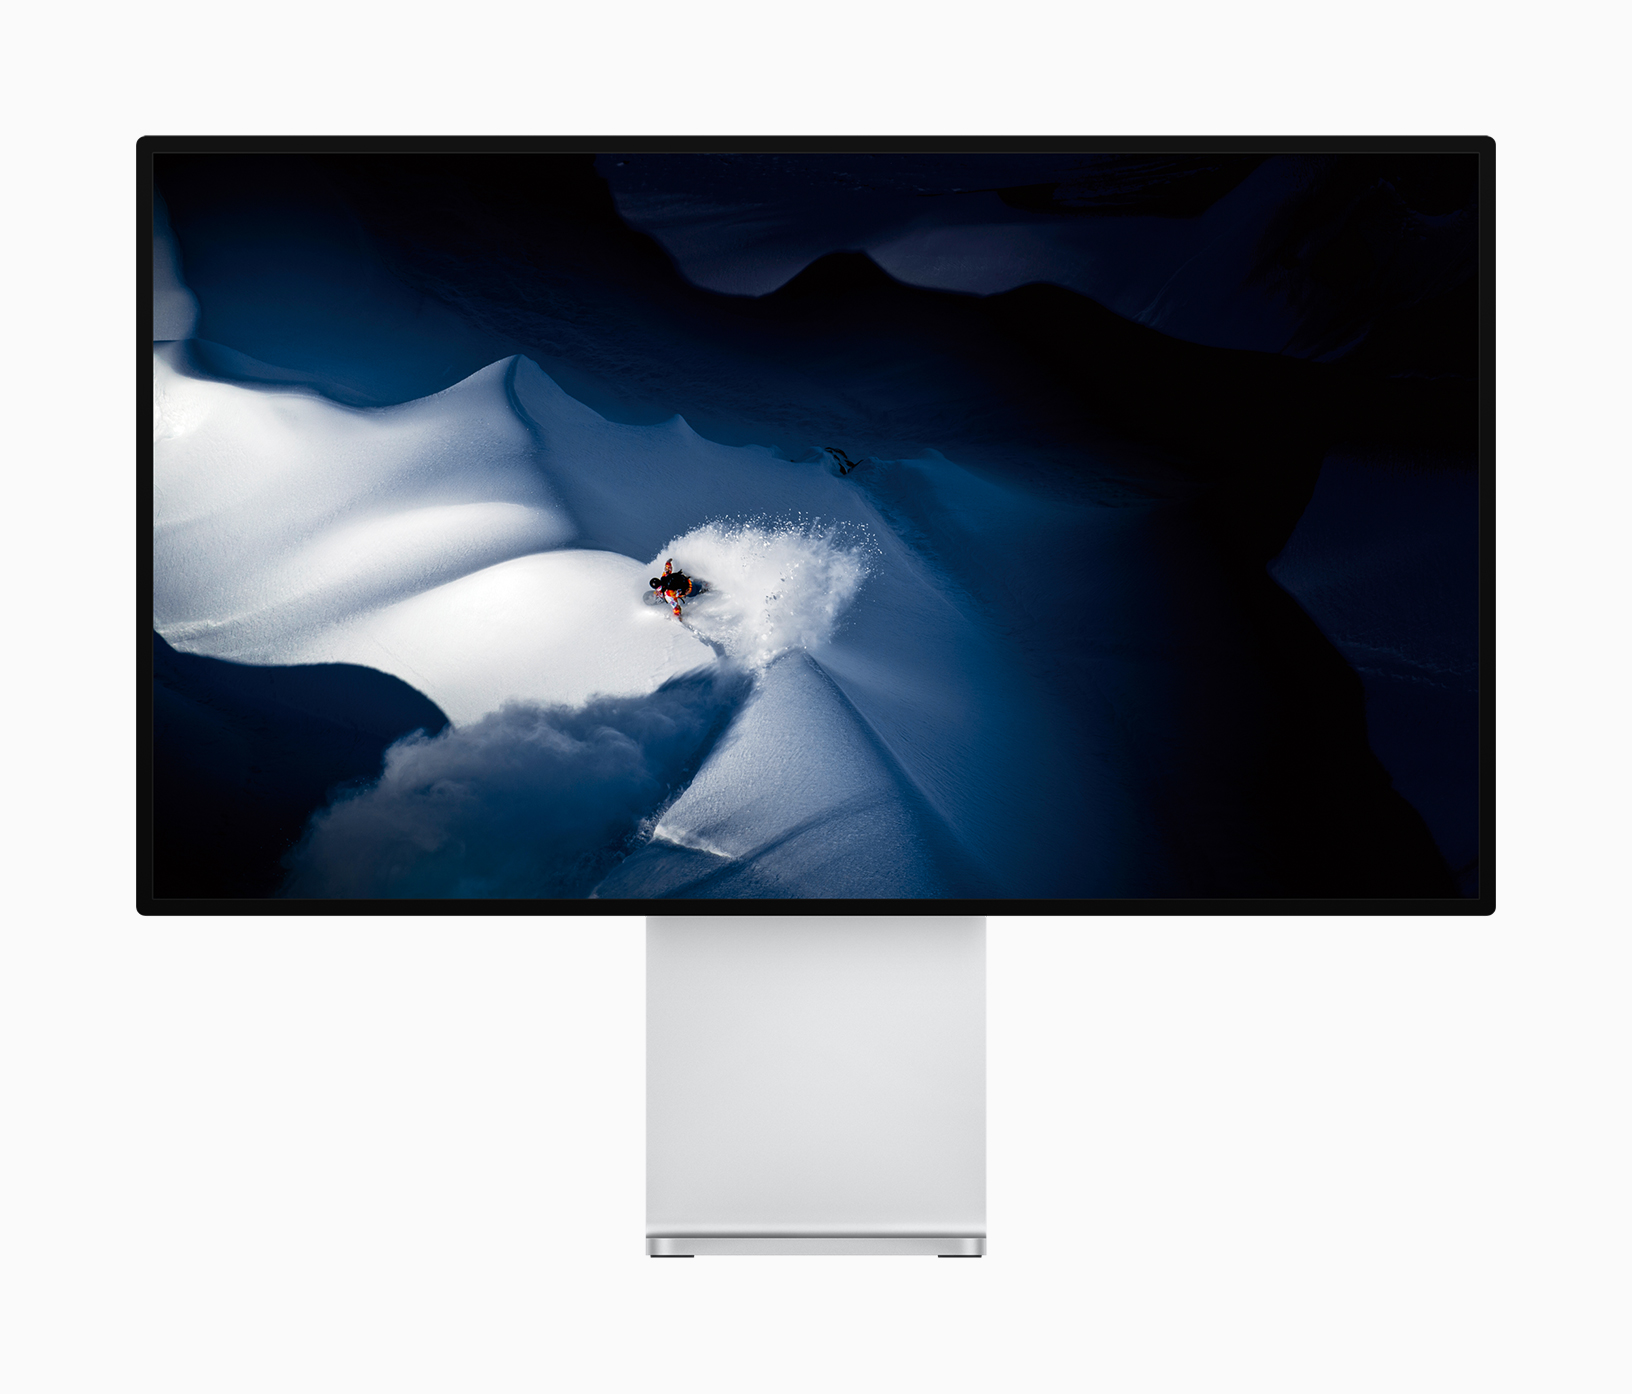 Apple plan related to first iMac desktop redesign in almost a decade